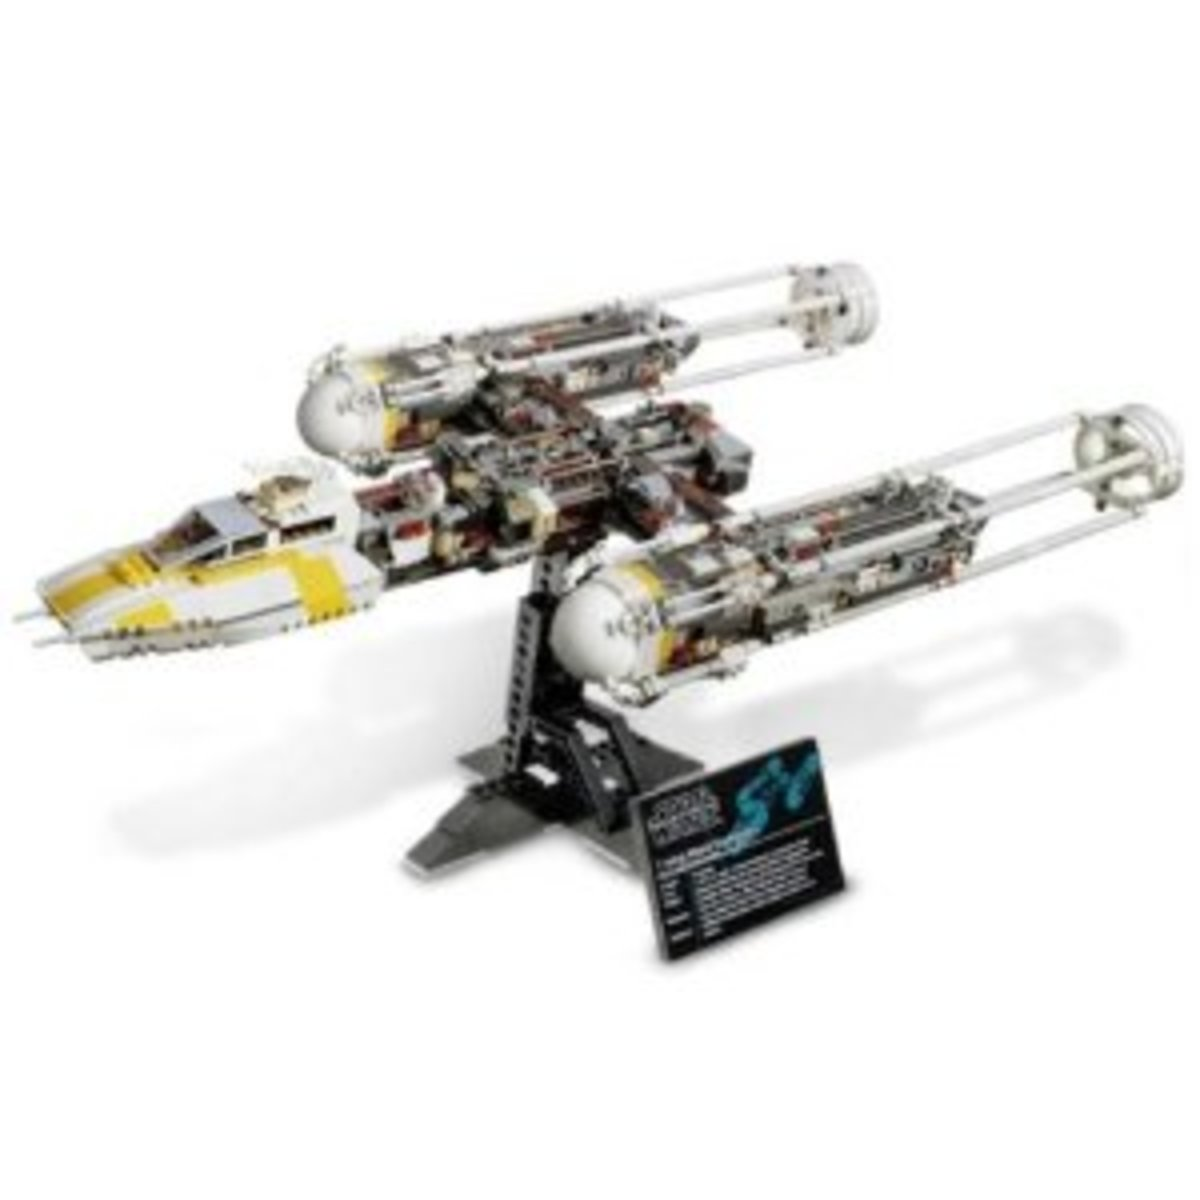 LEGO Star Wars Y-Wing Attack Starfighter 10134 Assembled